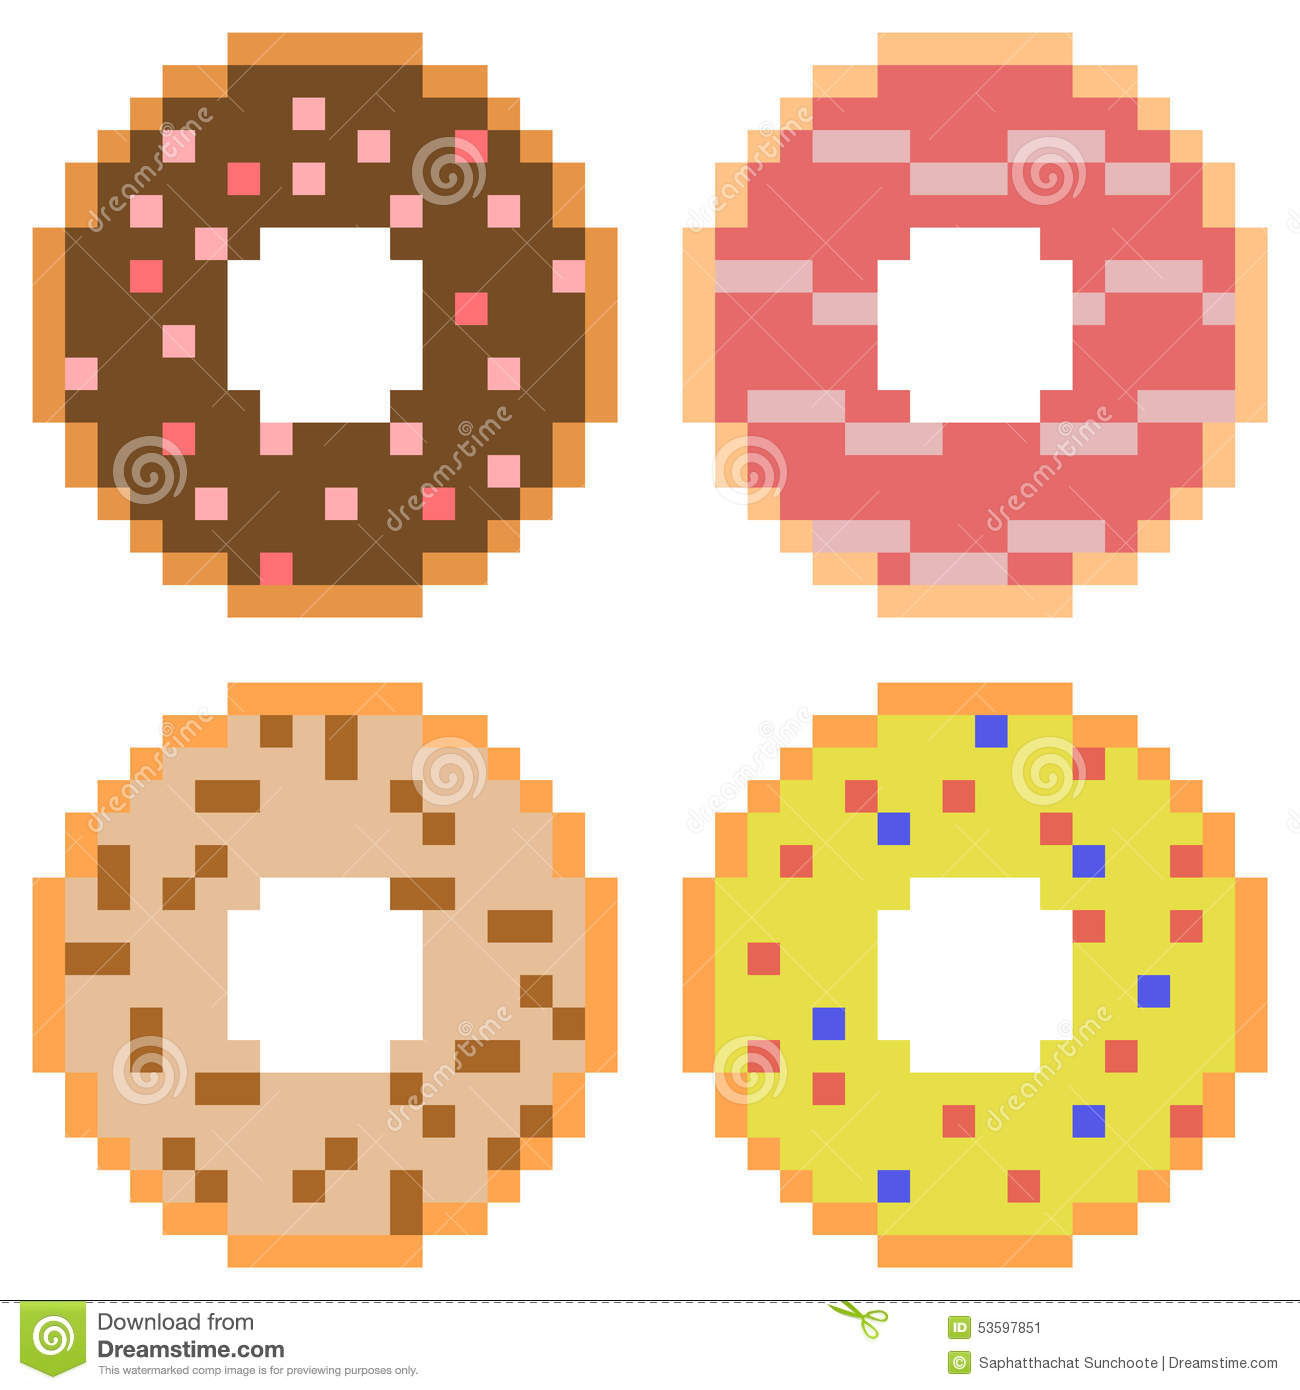 Illustration Pixel Art Icon Donut Stock Vector - Image ...